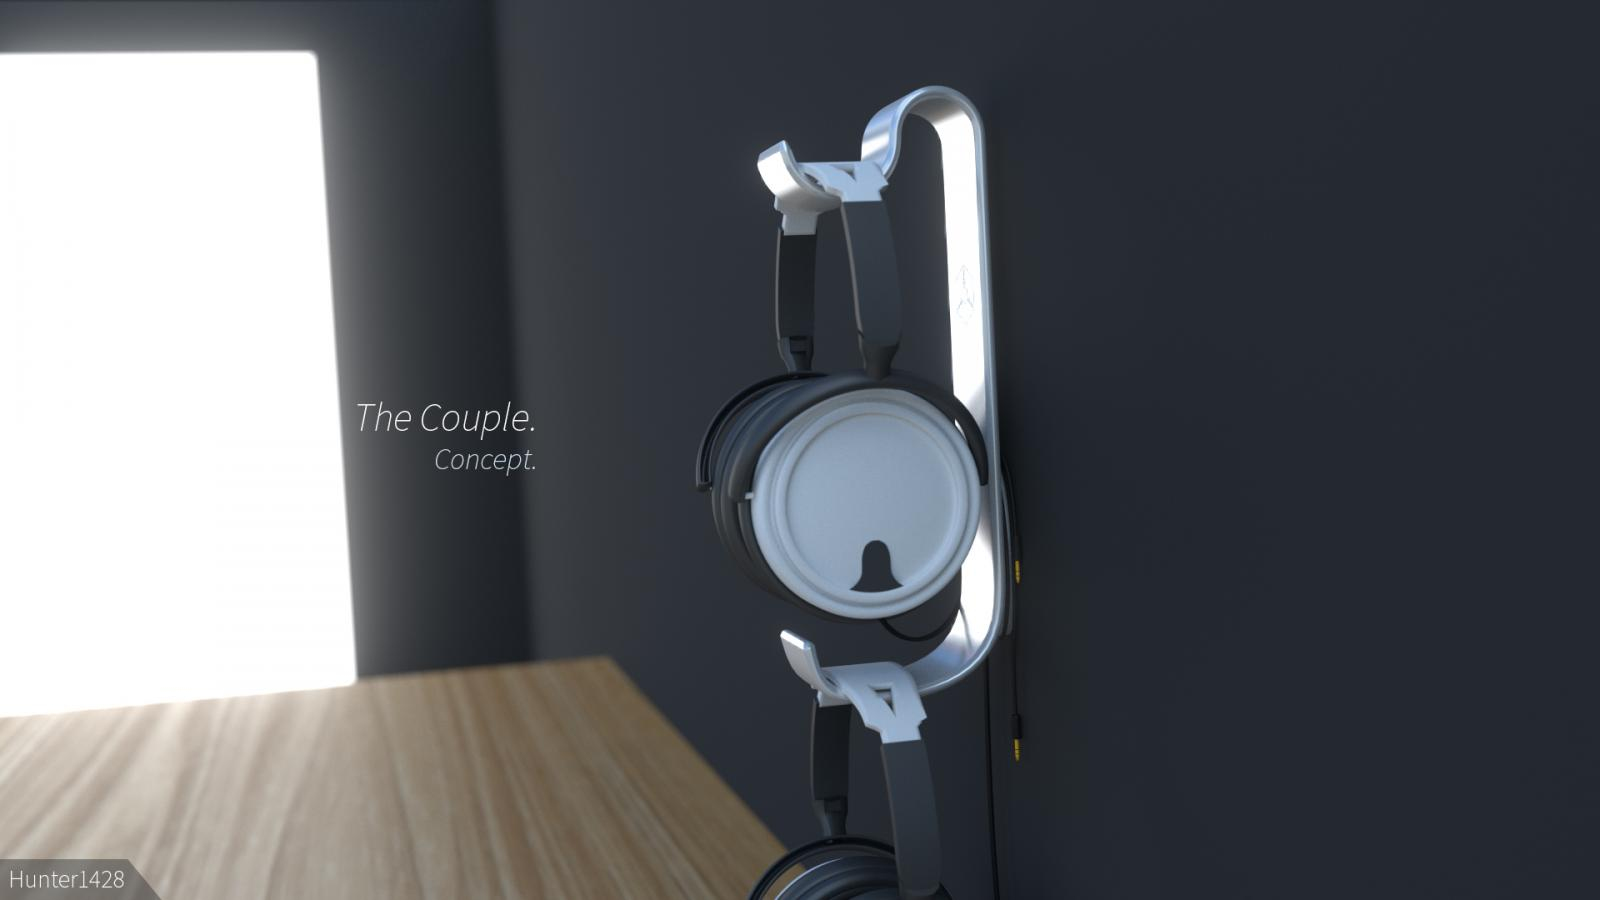 Silverstone wall mounted headphone holder concept off topic linus tech tips - Wall mount headphone holder ...